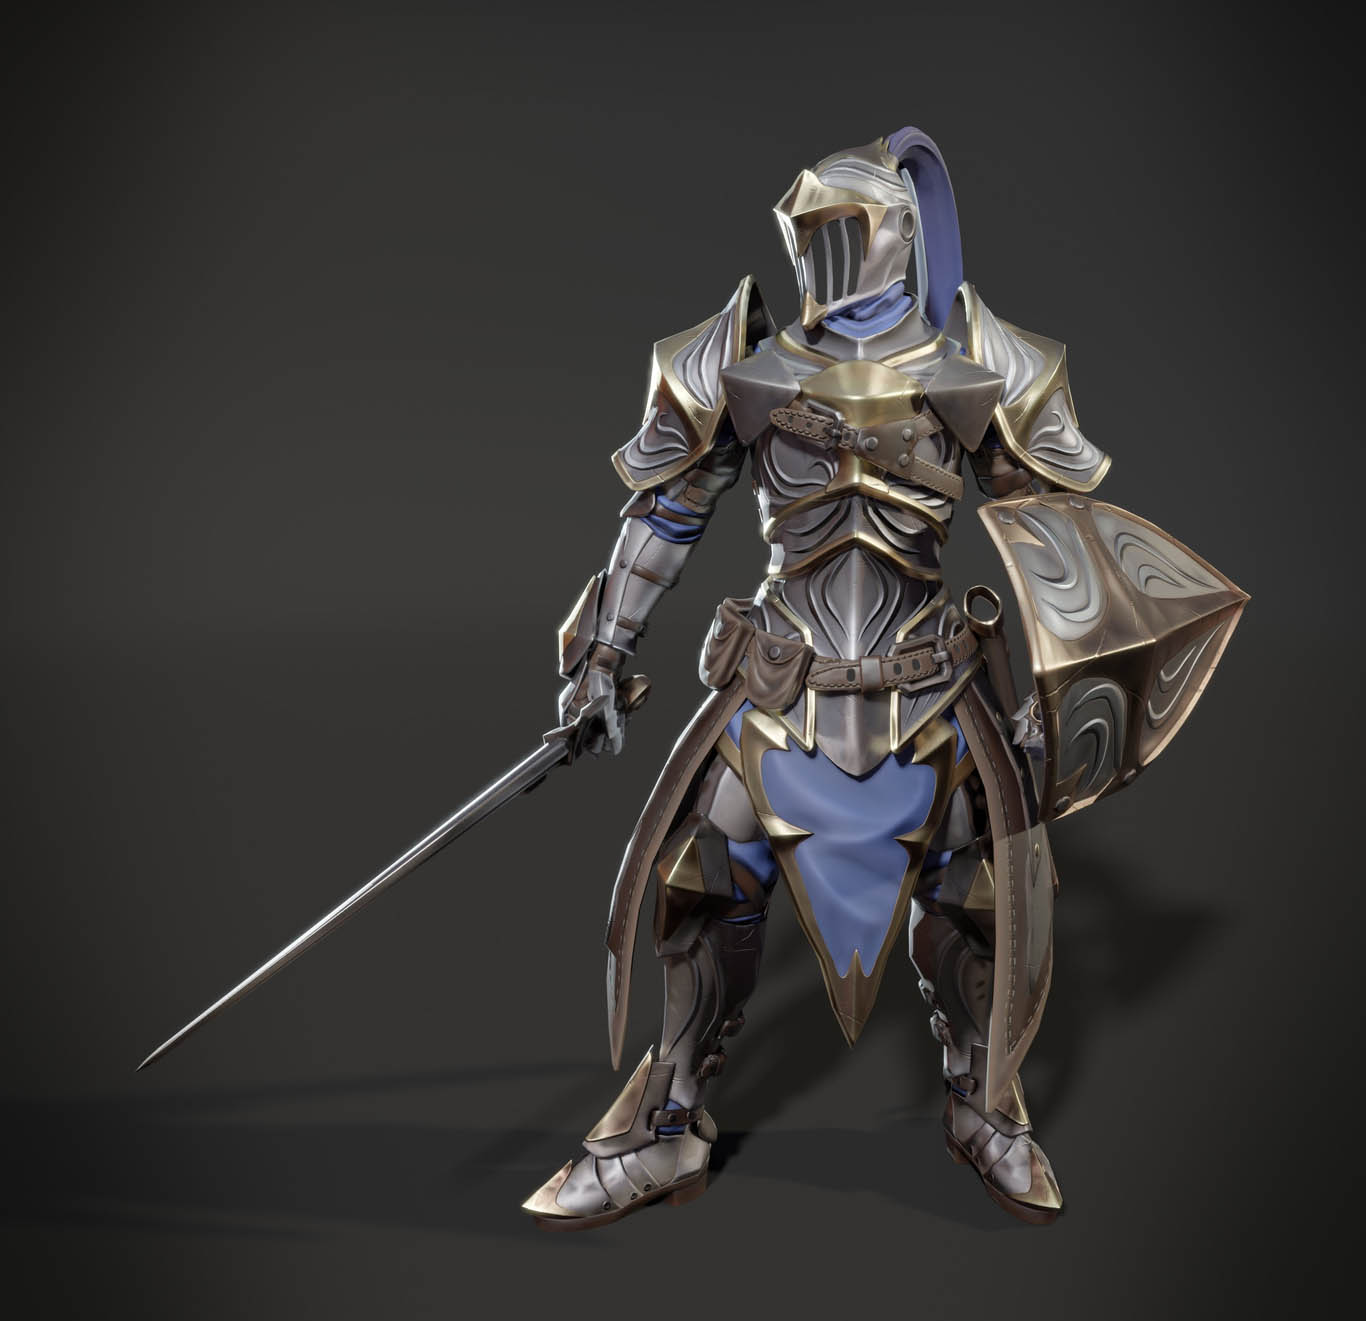 3d model stylized knight game by leo varas